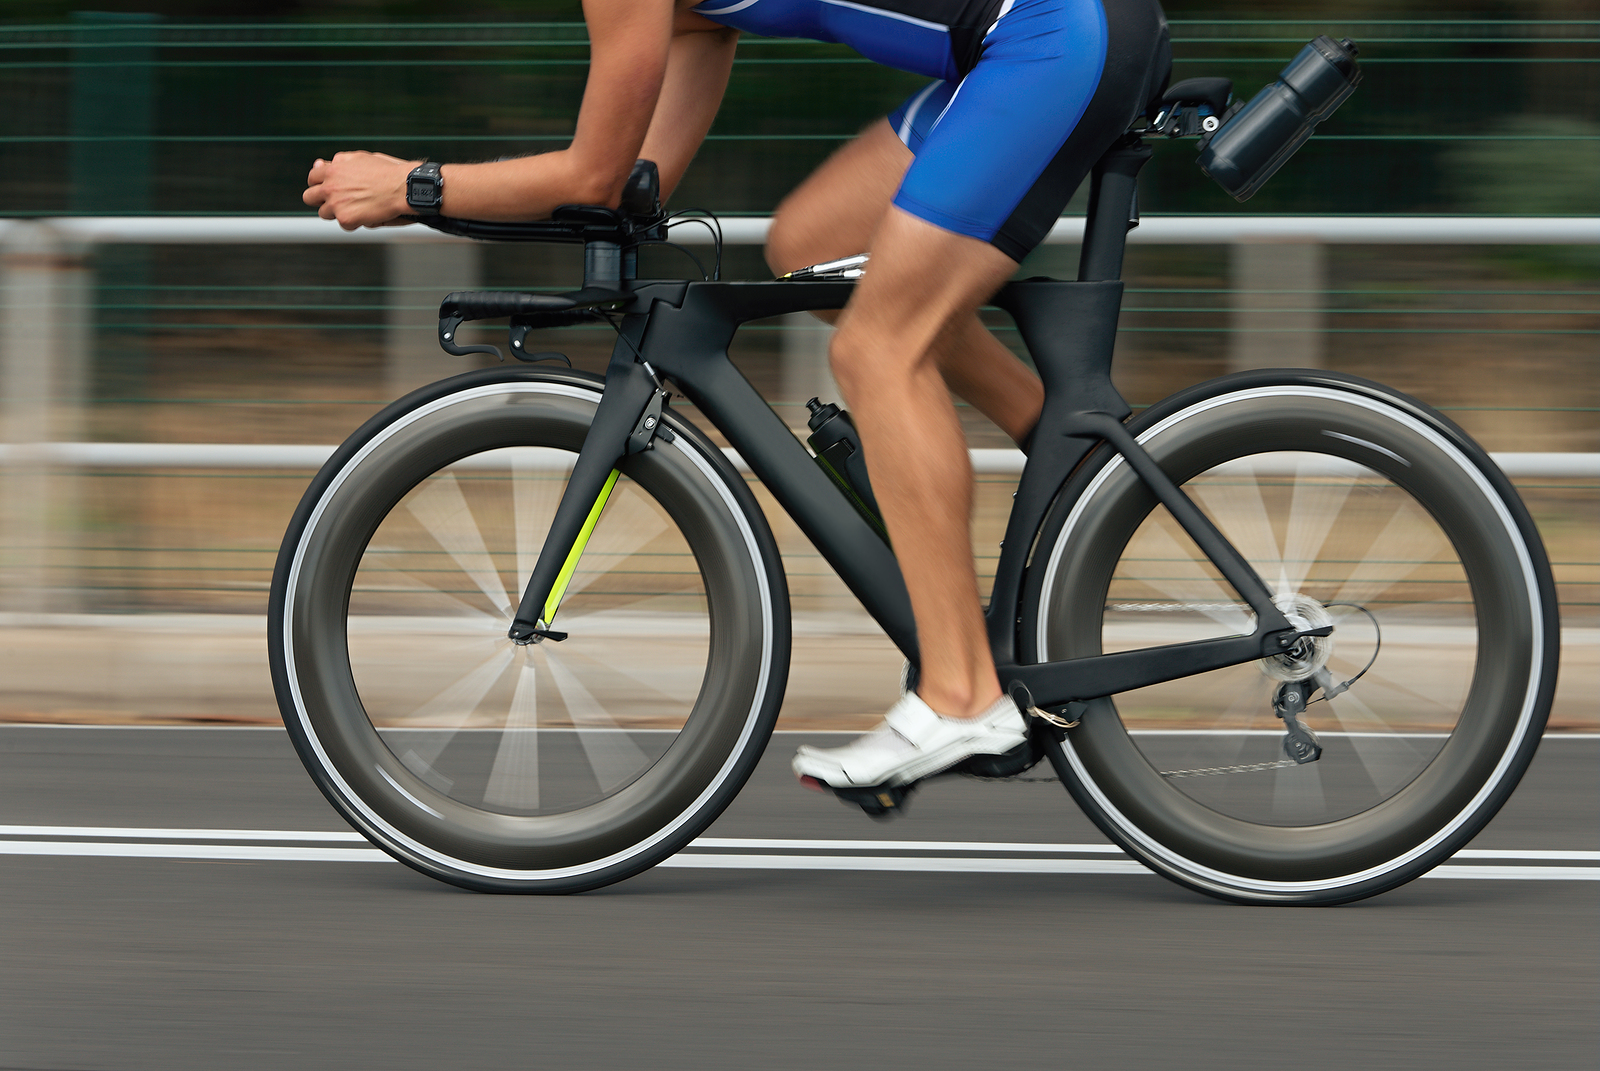 bigstock-Motion-Blur-Of-A-Bike-Race-Wit-230517880.jpg